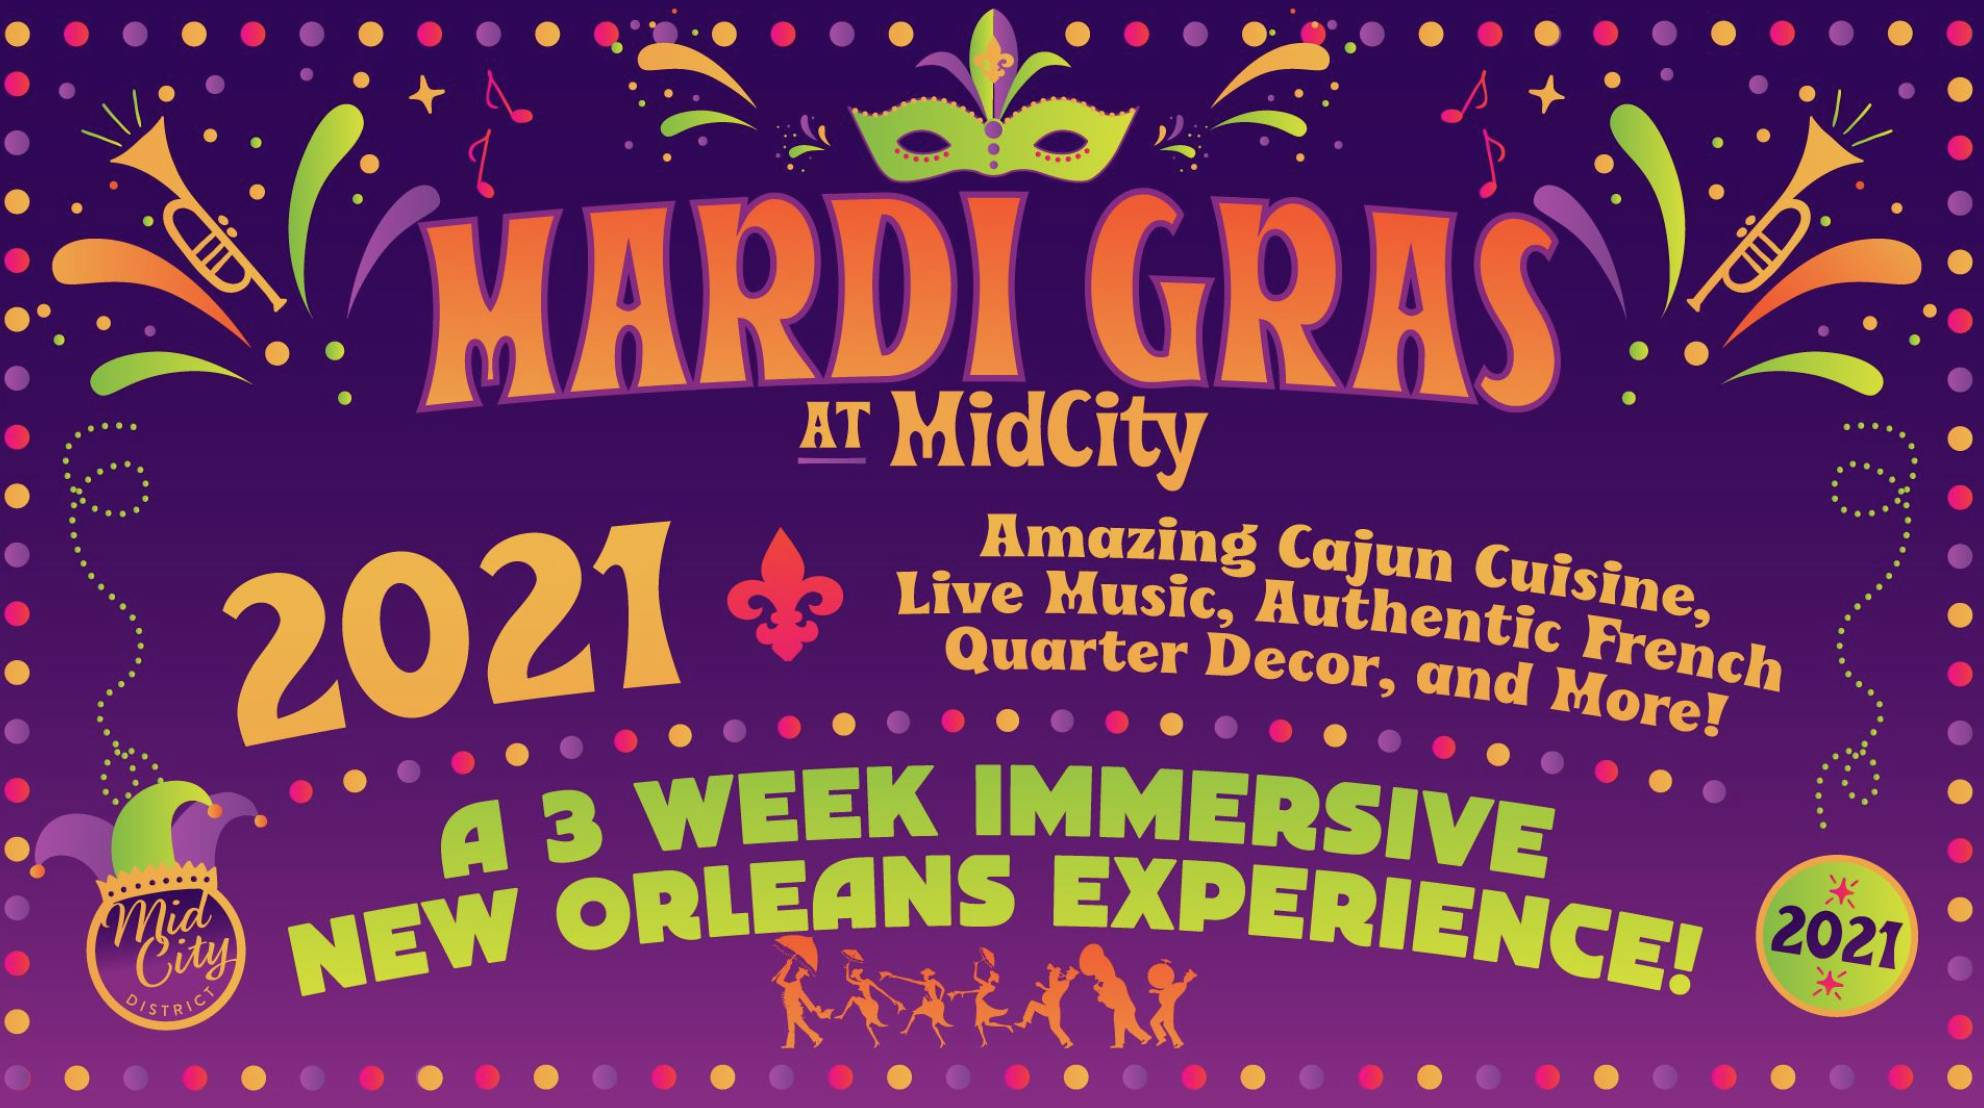 Mardi Gras at MidCity 2021